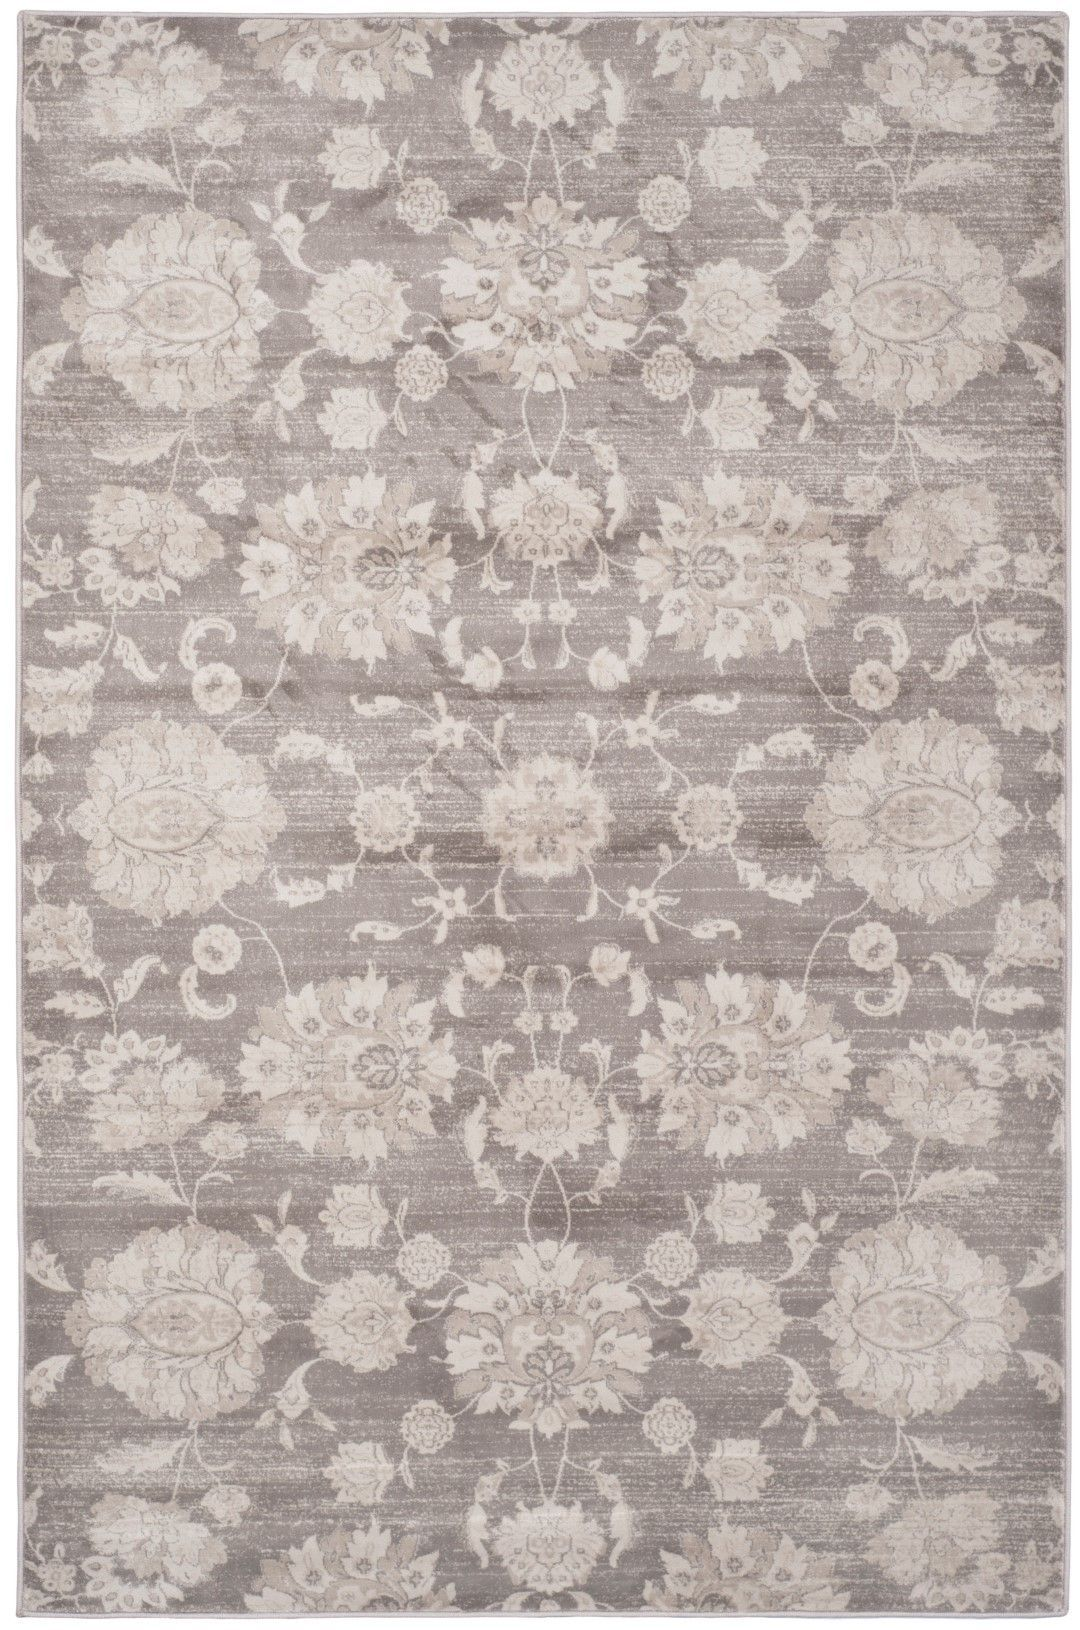 Wick St Lawrence Gray Ivory Area Rug Rugs Area Rugs Grey